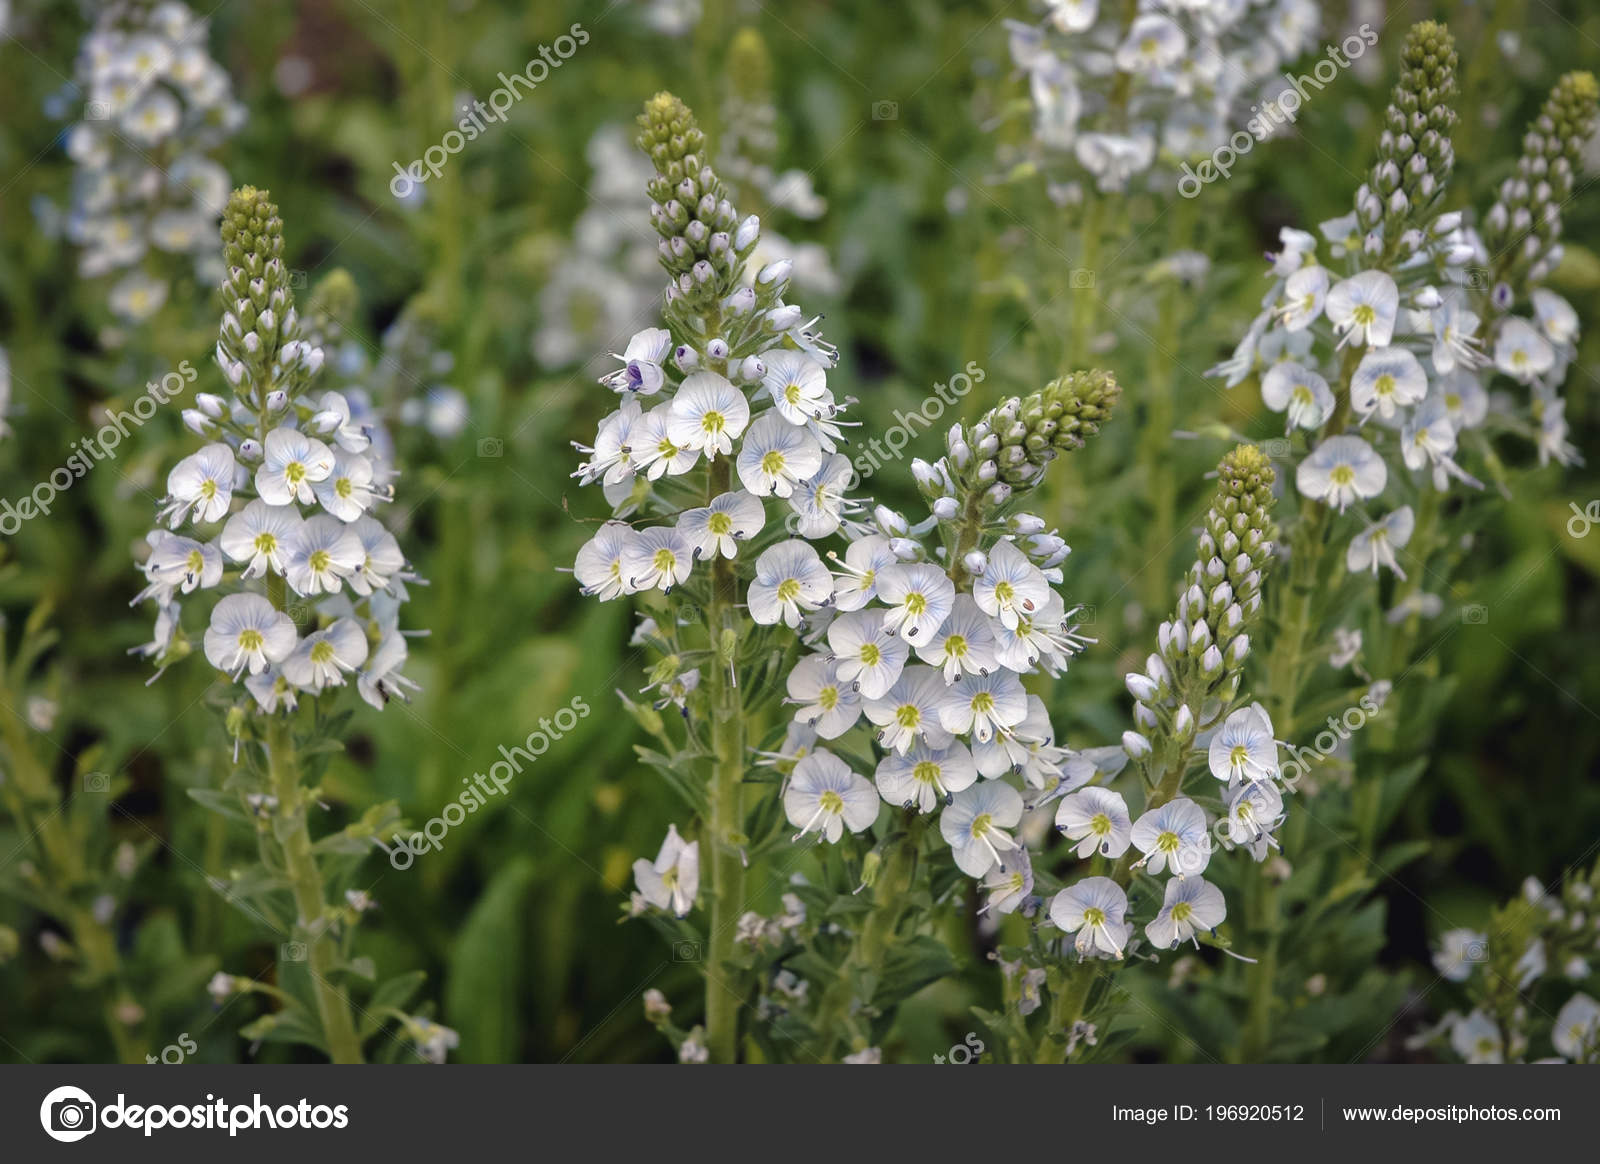 Close white flowers veronica gentianoides plant commonly known close up on a white flowers of veronica gentianoides plant commonly known as gentian speedwell photo by fotokon mightylinksfo